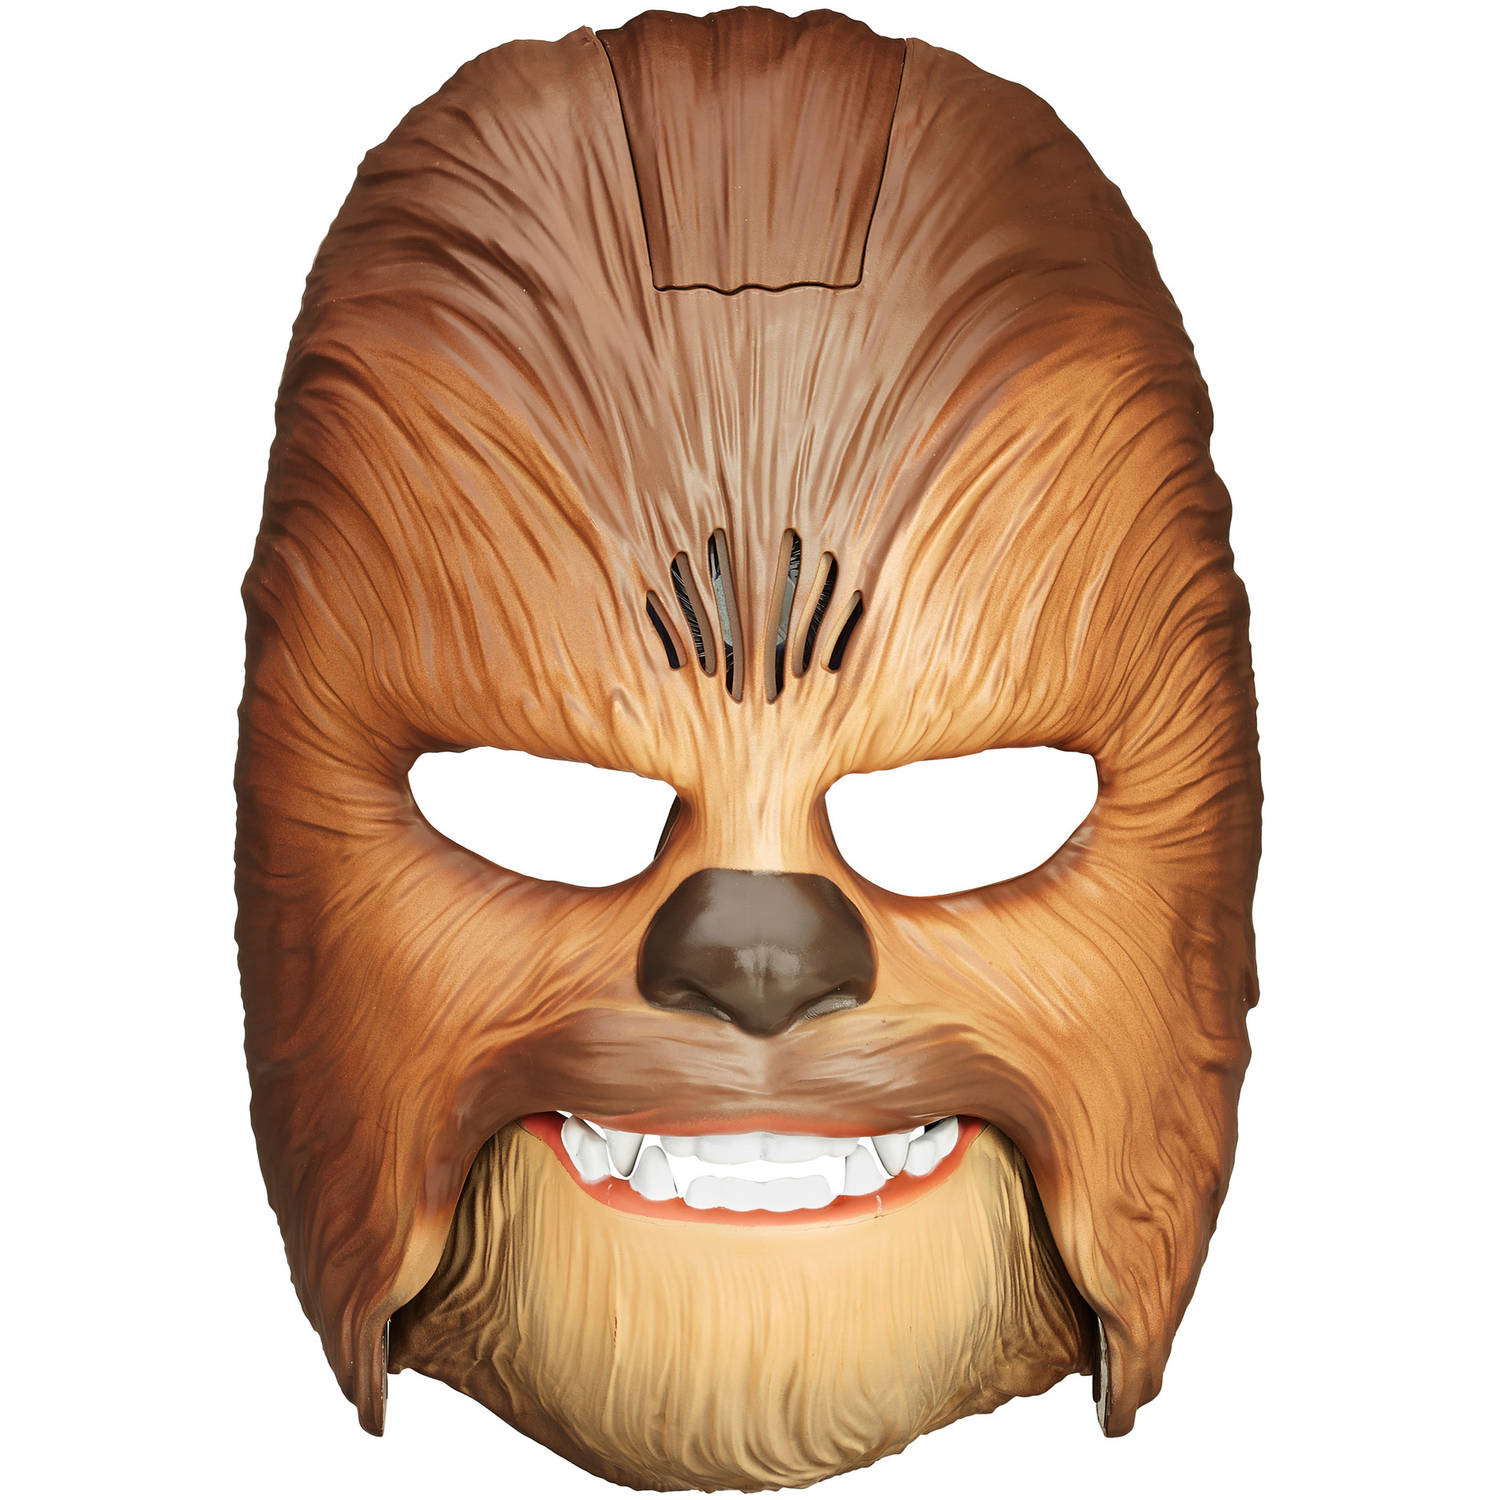 star wars the force awakens chewbacca electronic mask walmartcom - What Do You Get A Wookie For Christmas